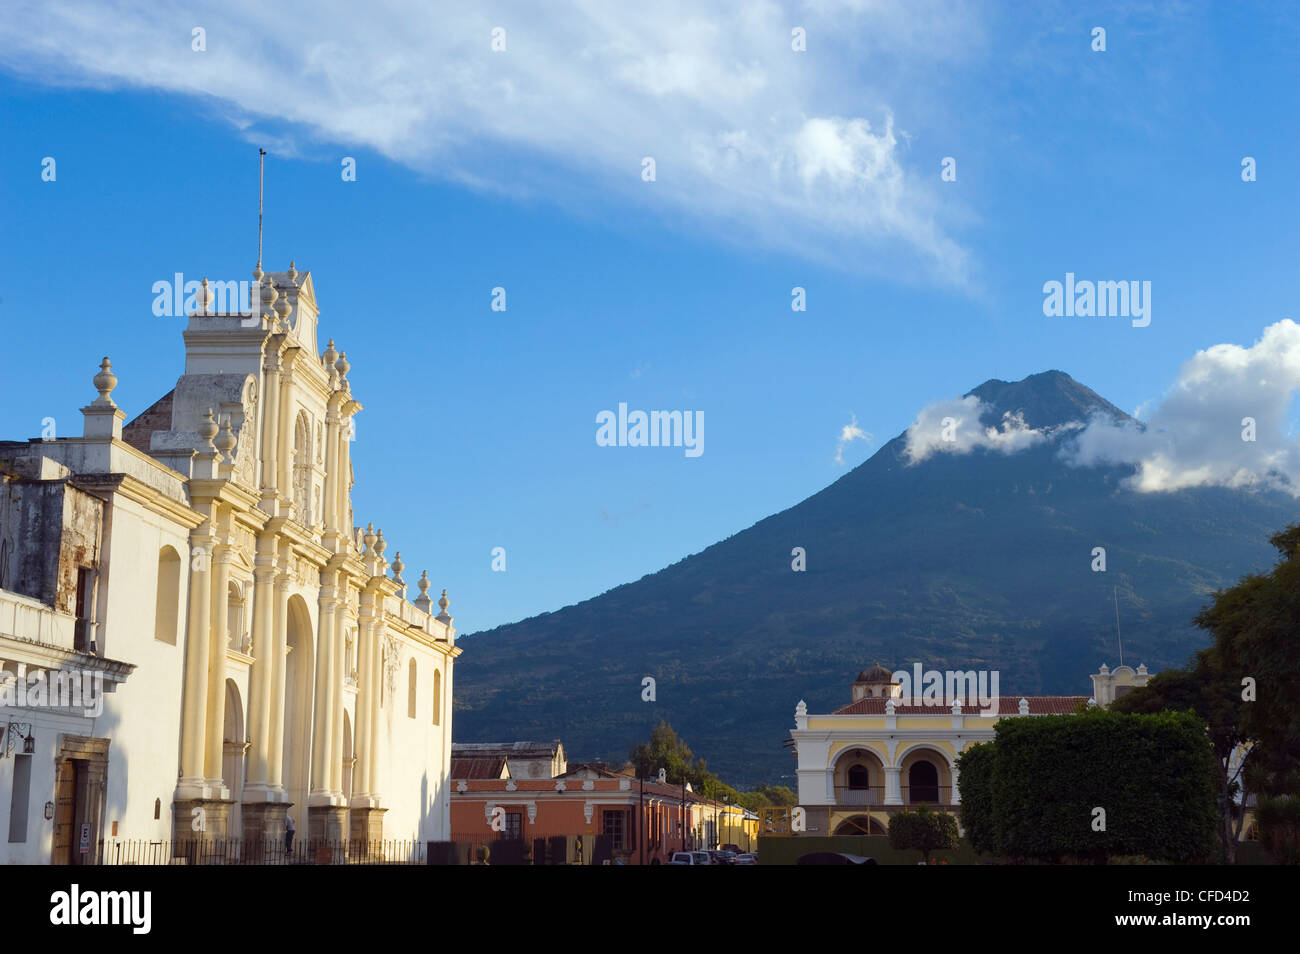 Volcan de Agua, 3765m, and Cathedral, Antigua, UNESCO World Heritage Site, Guatemala, Central America - Stock Image